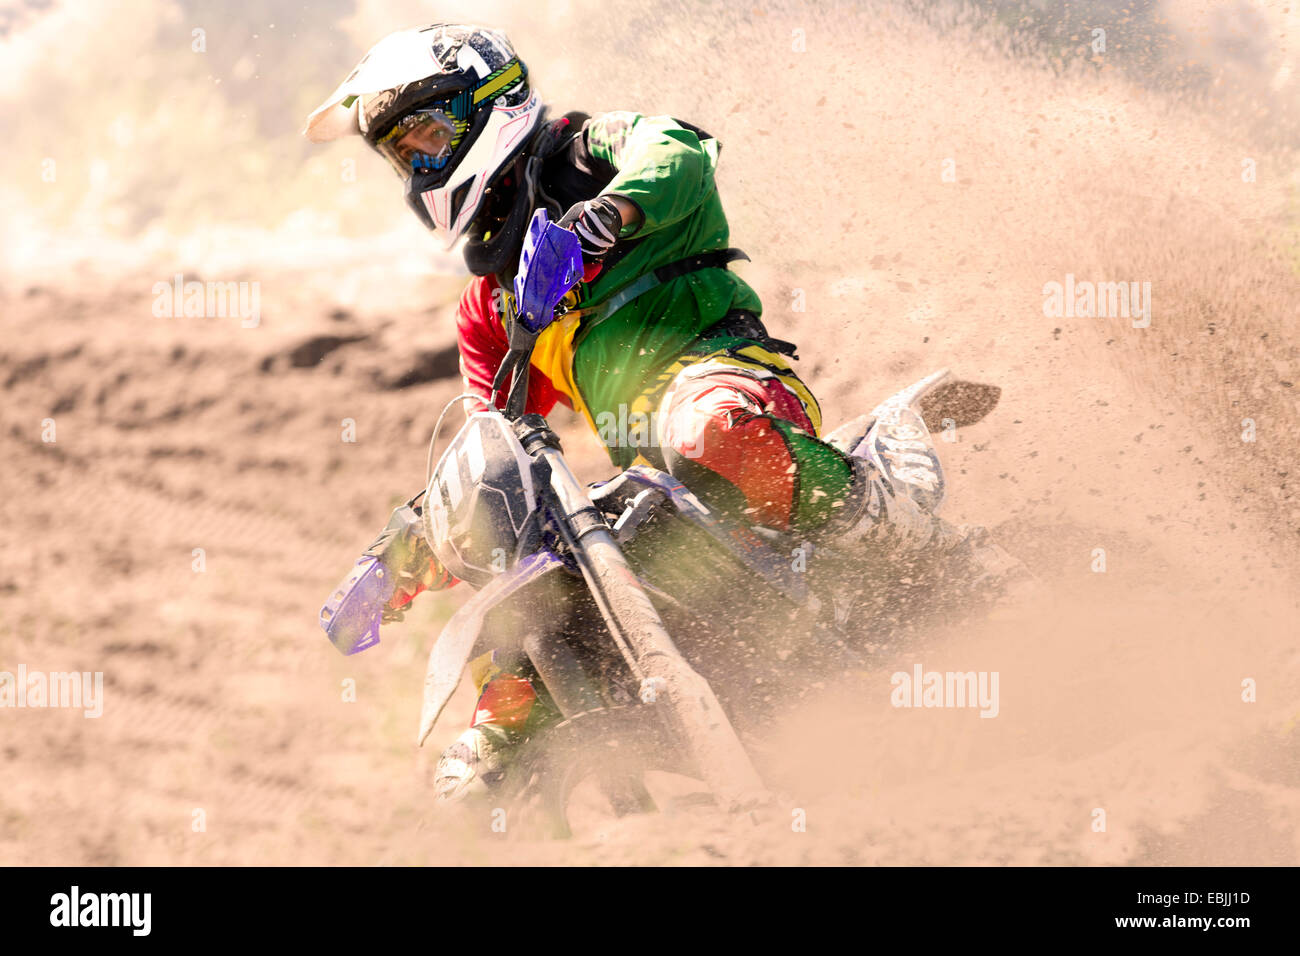 Young male motocross rider racing and leaning into mud track - Stock Image